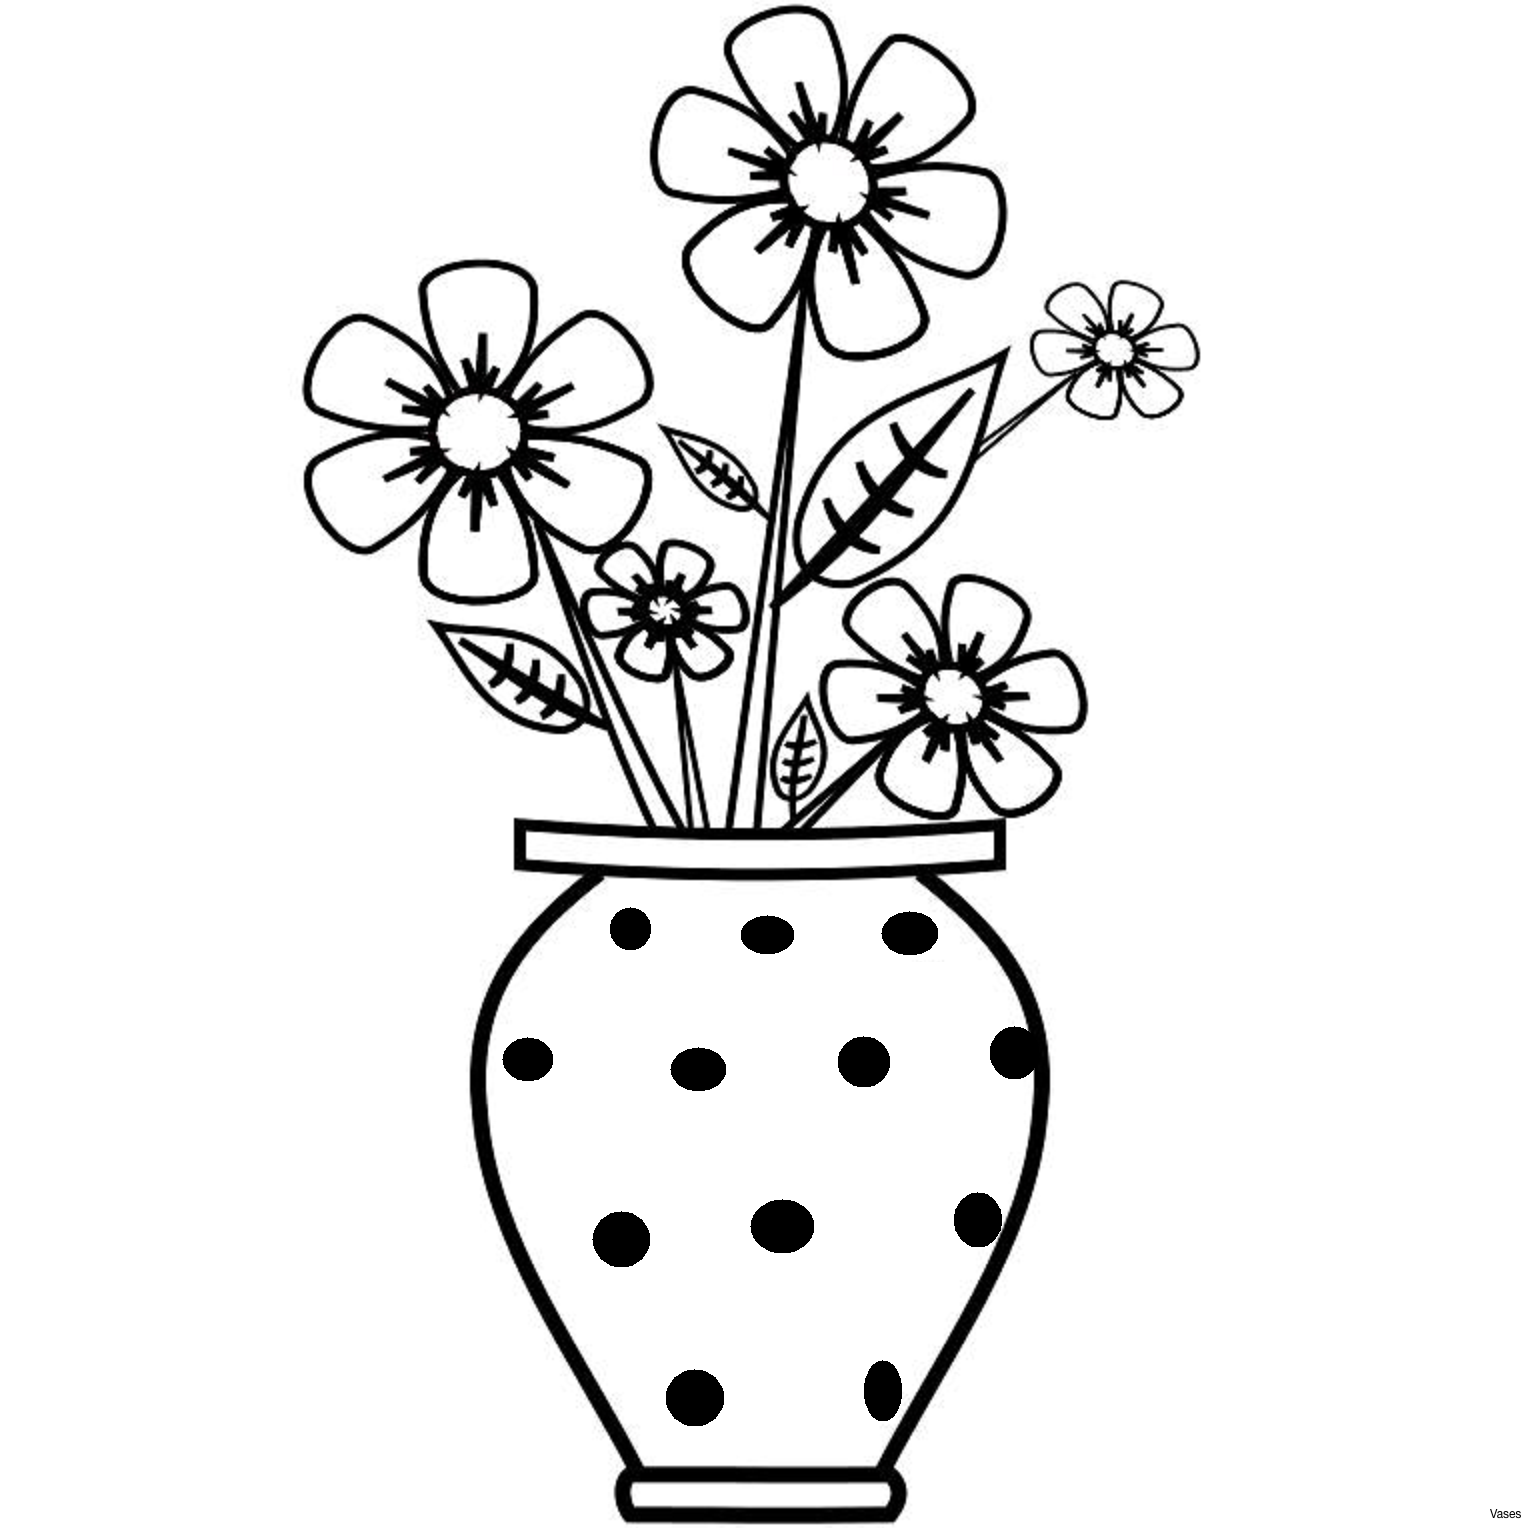 1532x1528 Drawn Vase 14h Vases How To Draw Flowers In A Pin Rose Drawing 1i